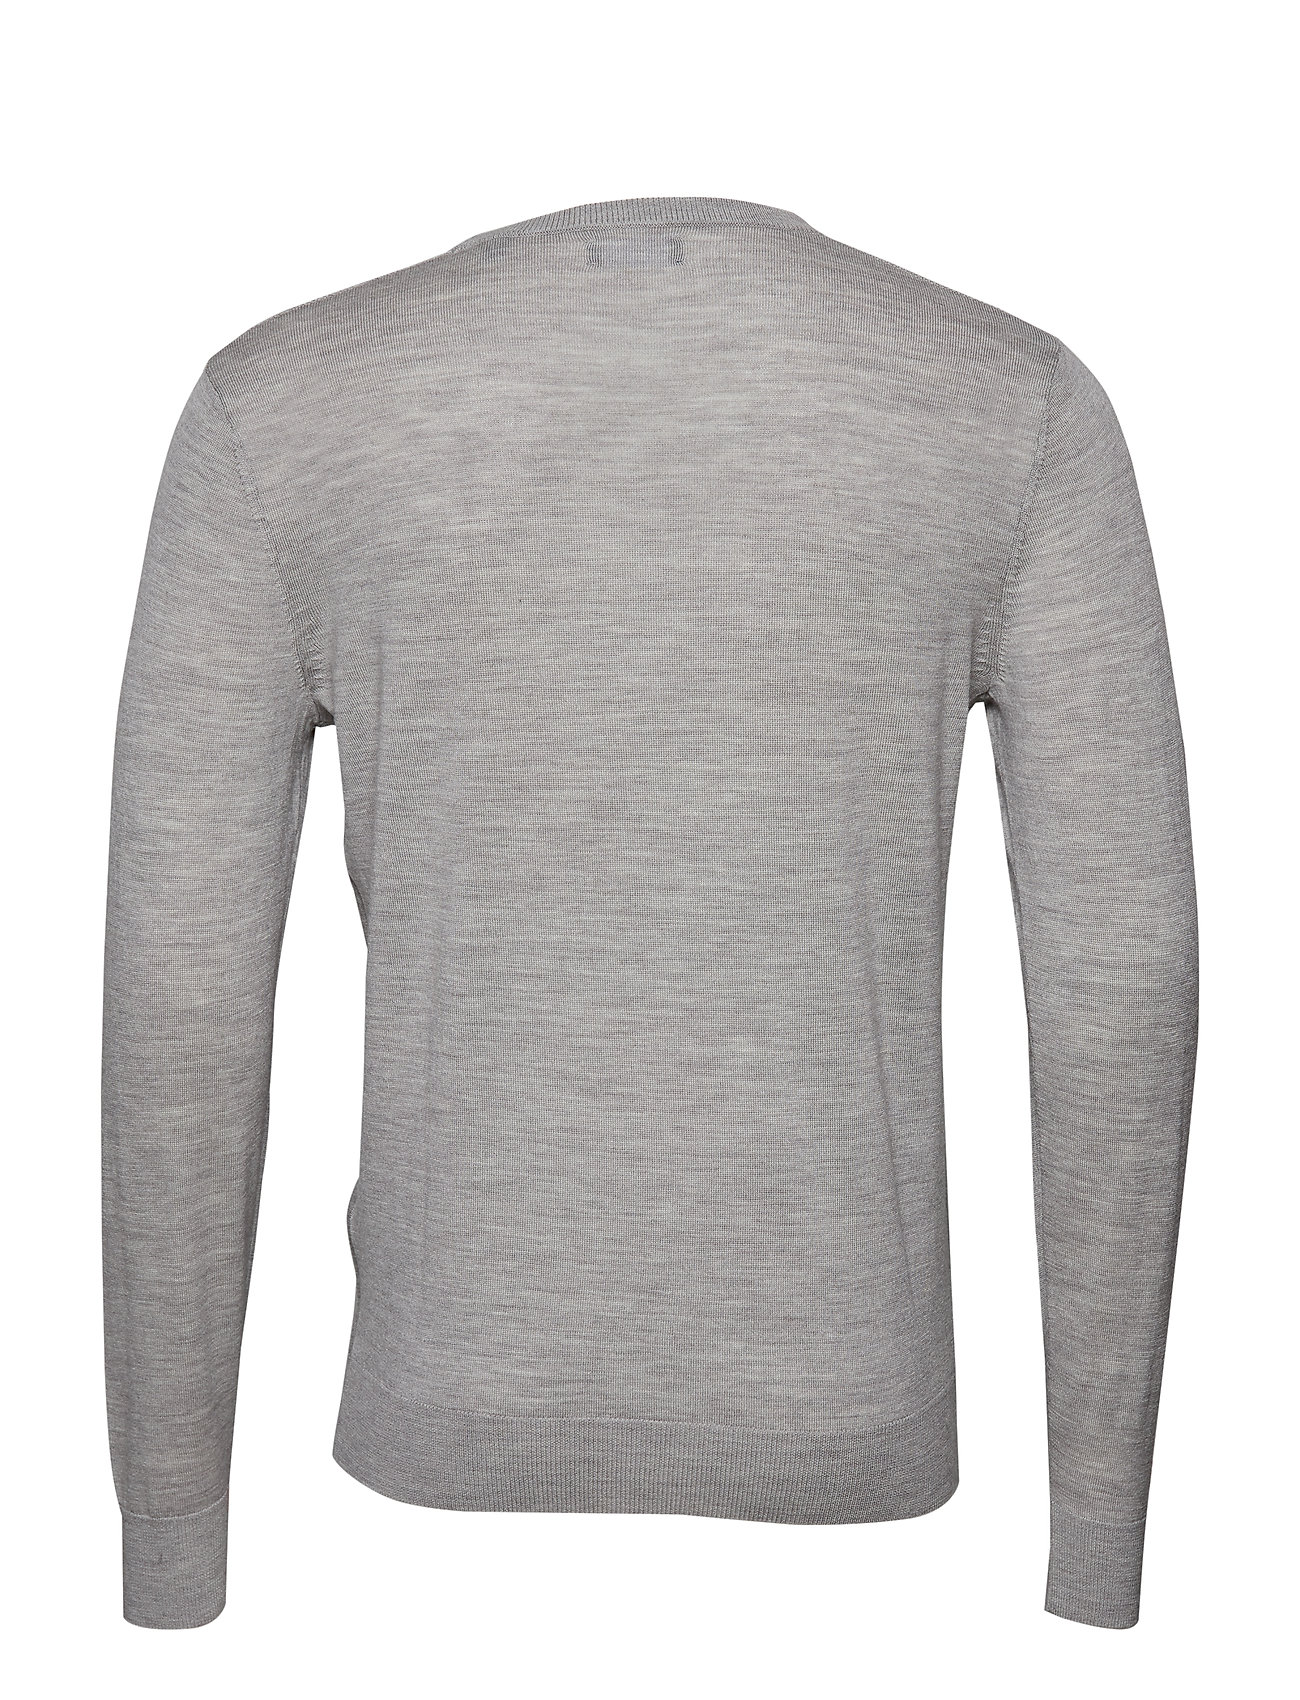 C Merino neckgrey Merino MelangeGant D1Washable D1Washable C neckgrey MelangeGant D1Washable Merino LSqUpGzMV